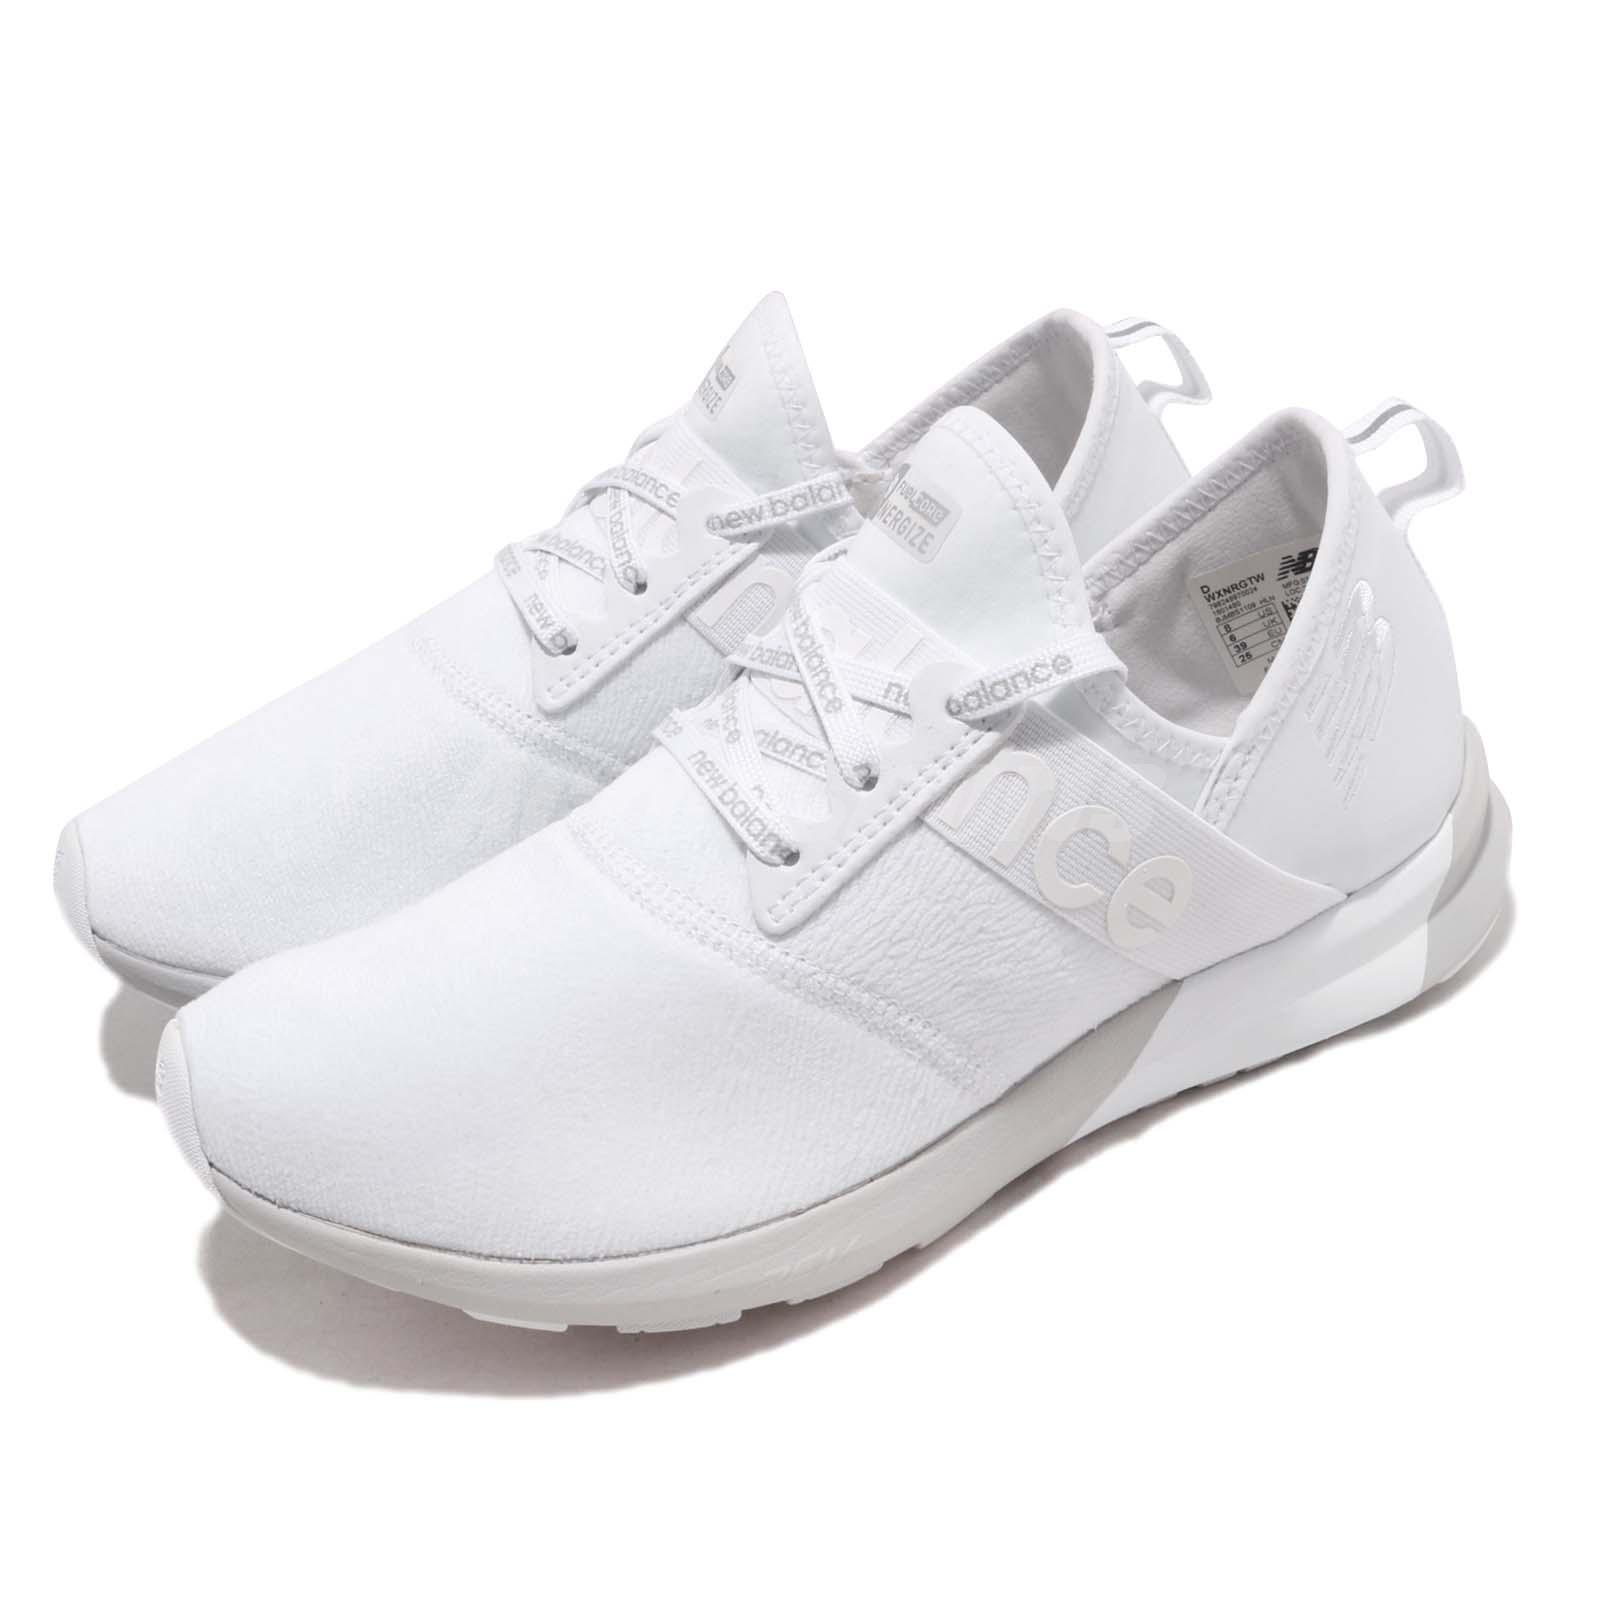 03ddff3d5ec Details about New Balance WXNRGTW D Wide White Grey Women Running Shoes  Sneakers WXNRGTWD